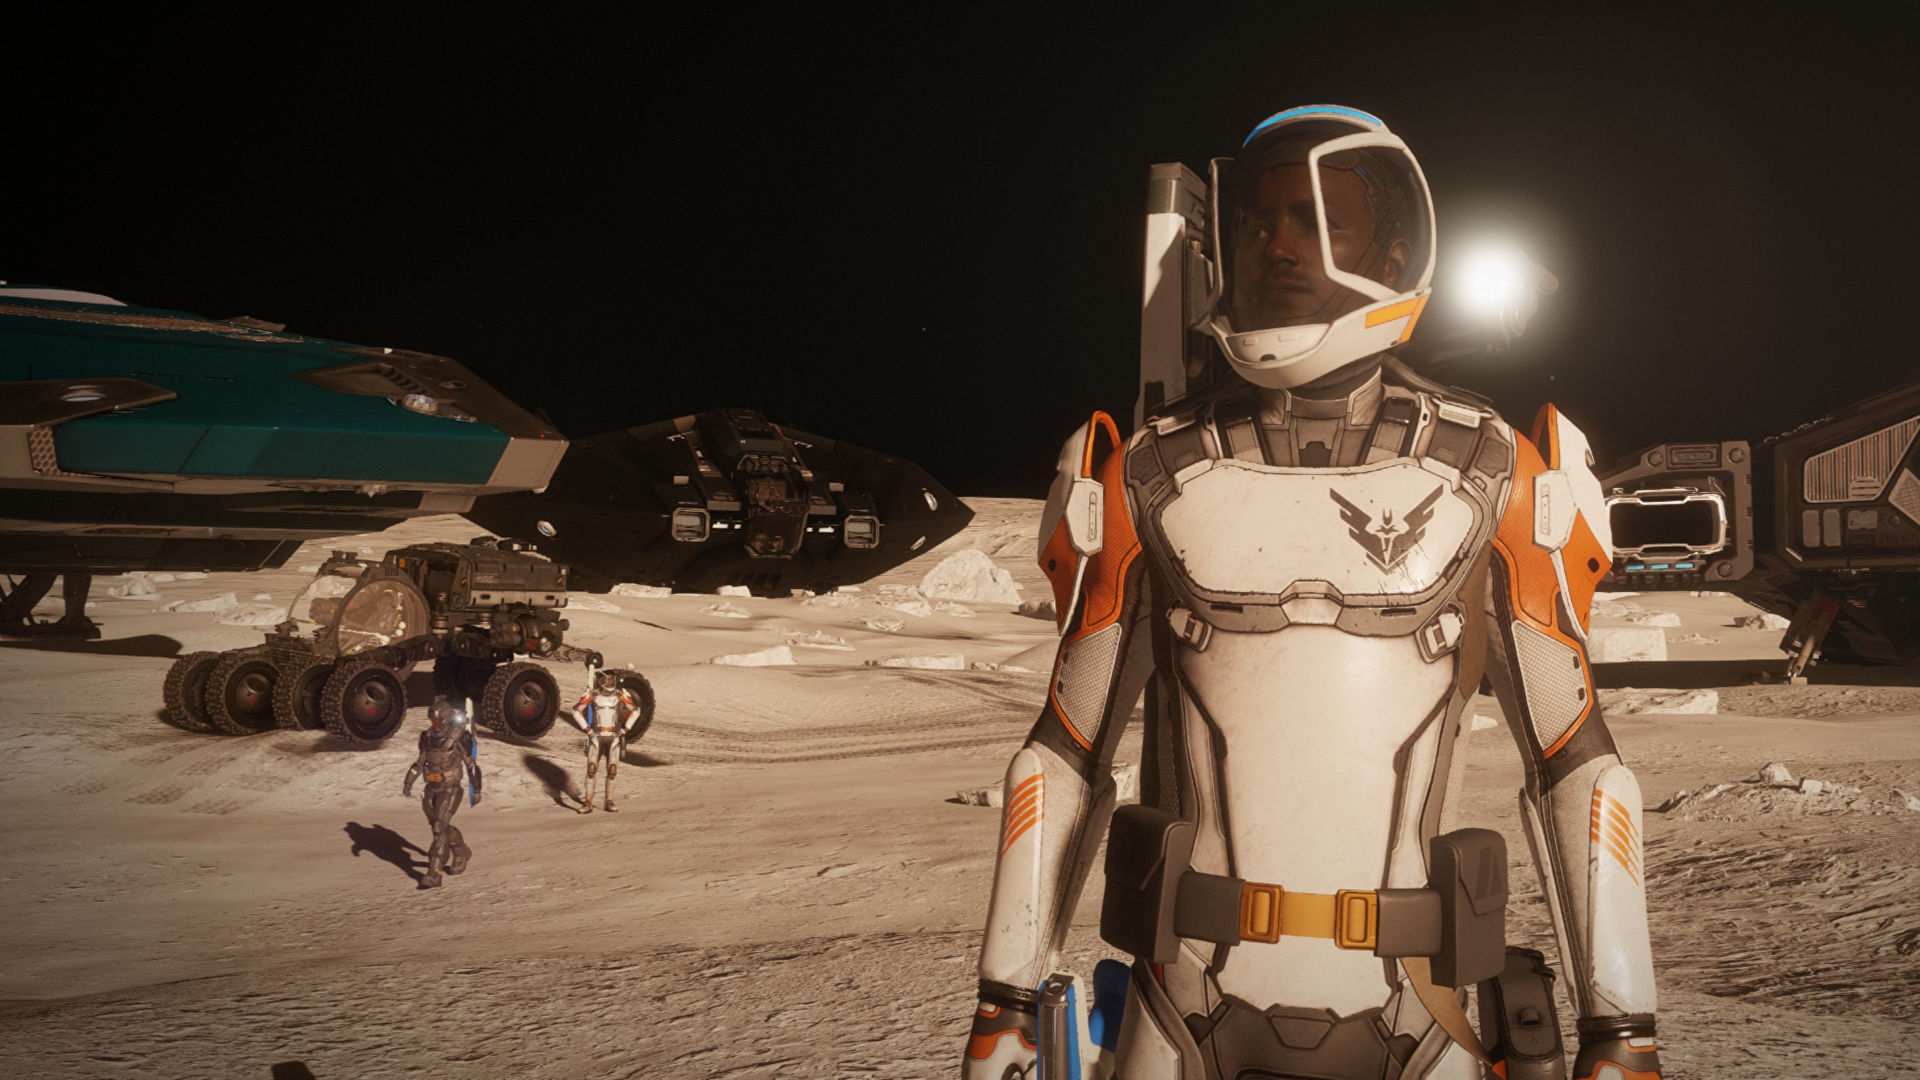 Elite Dangerous: Odyssey will let you stretch your legs on May 19th